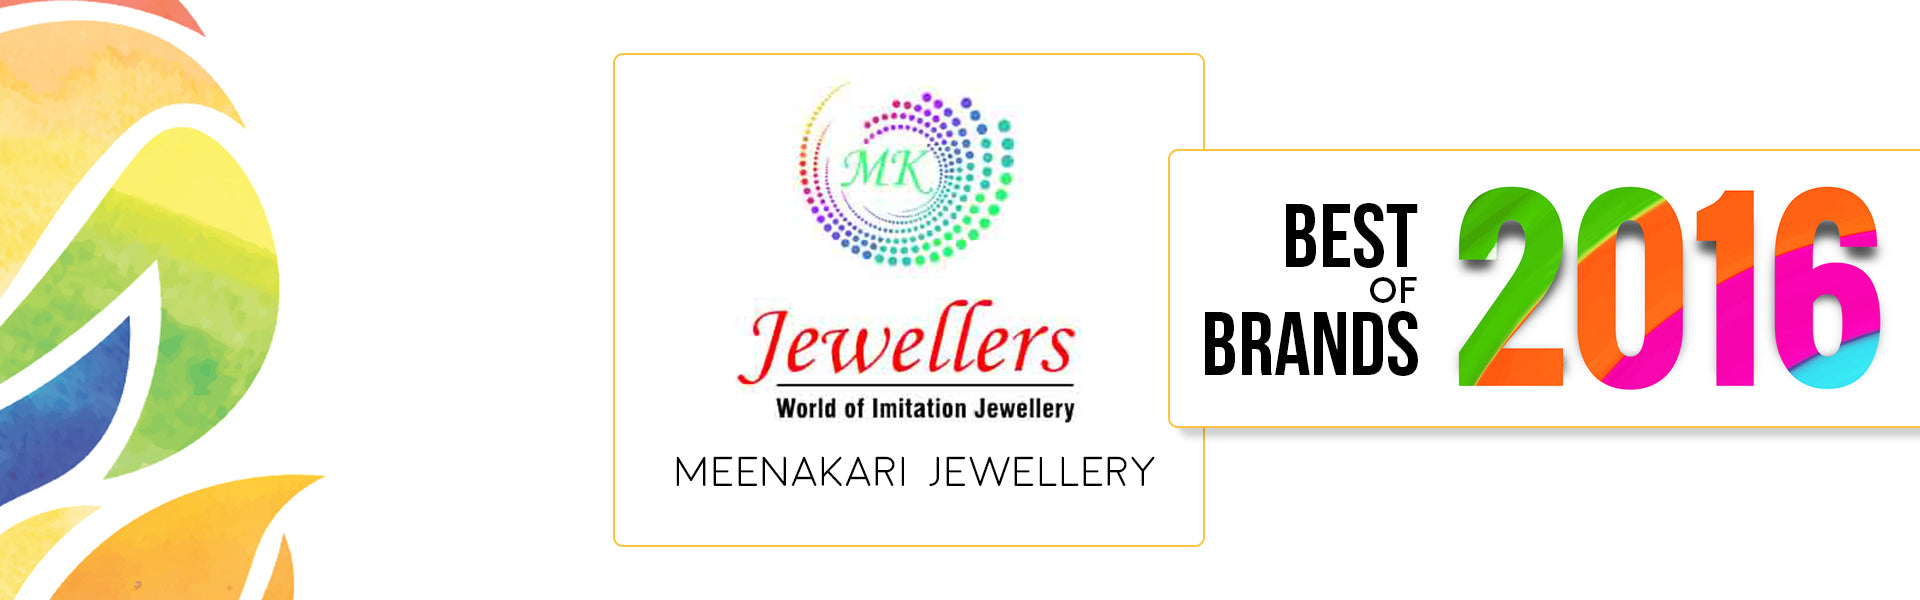 Best Brands of 2016 | MK Jewellers